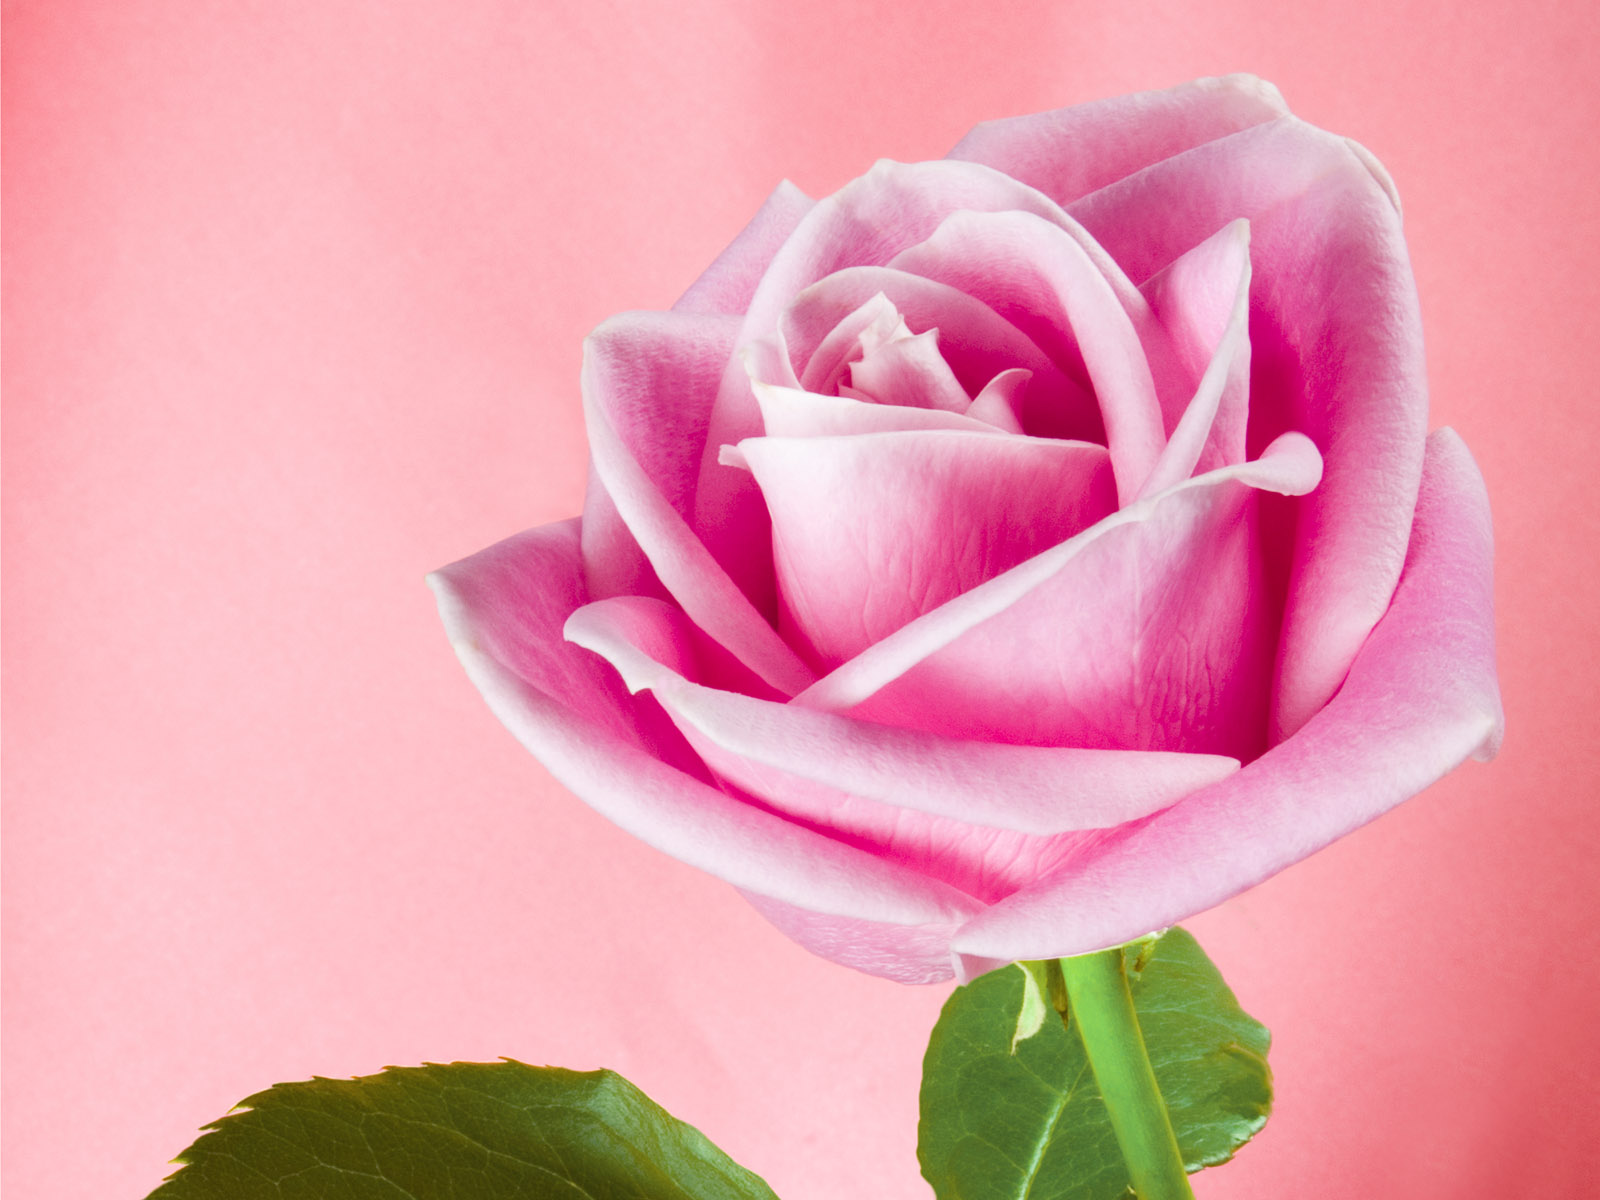 Flowers images Pink Rose HD wallpaper and background photos 33340984 1600x1200